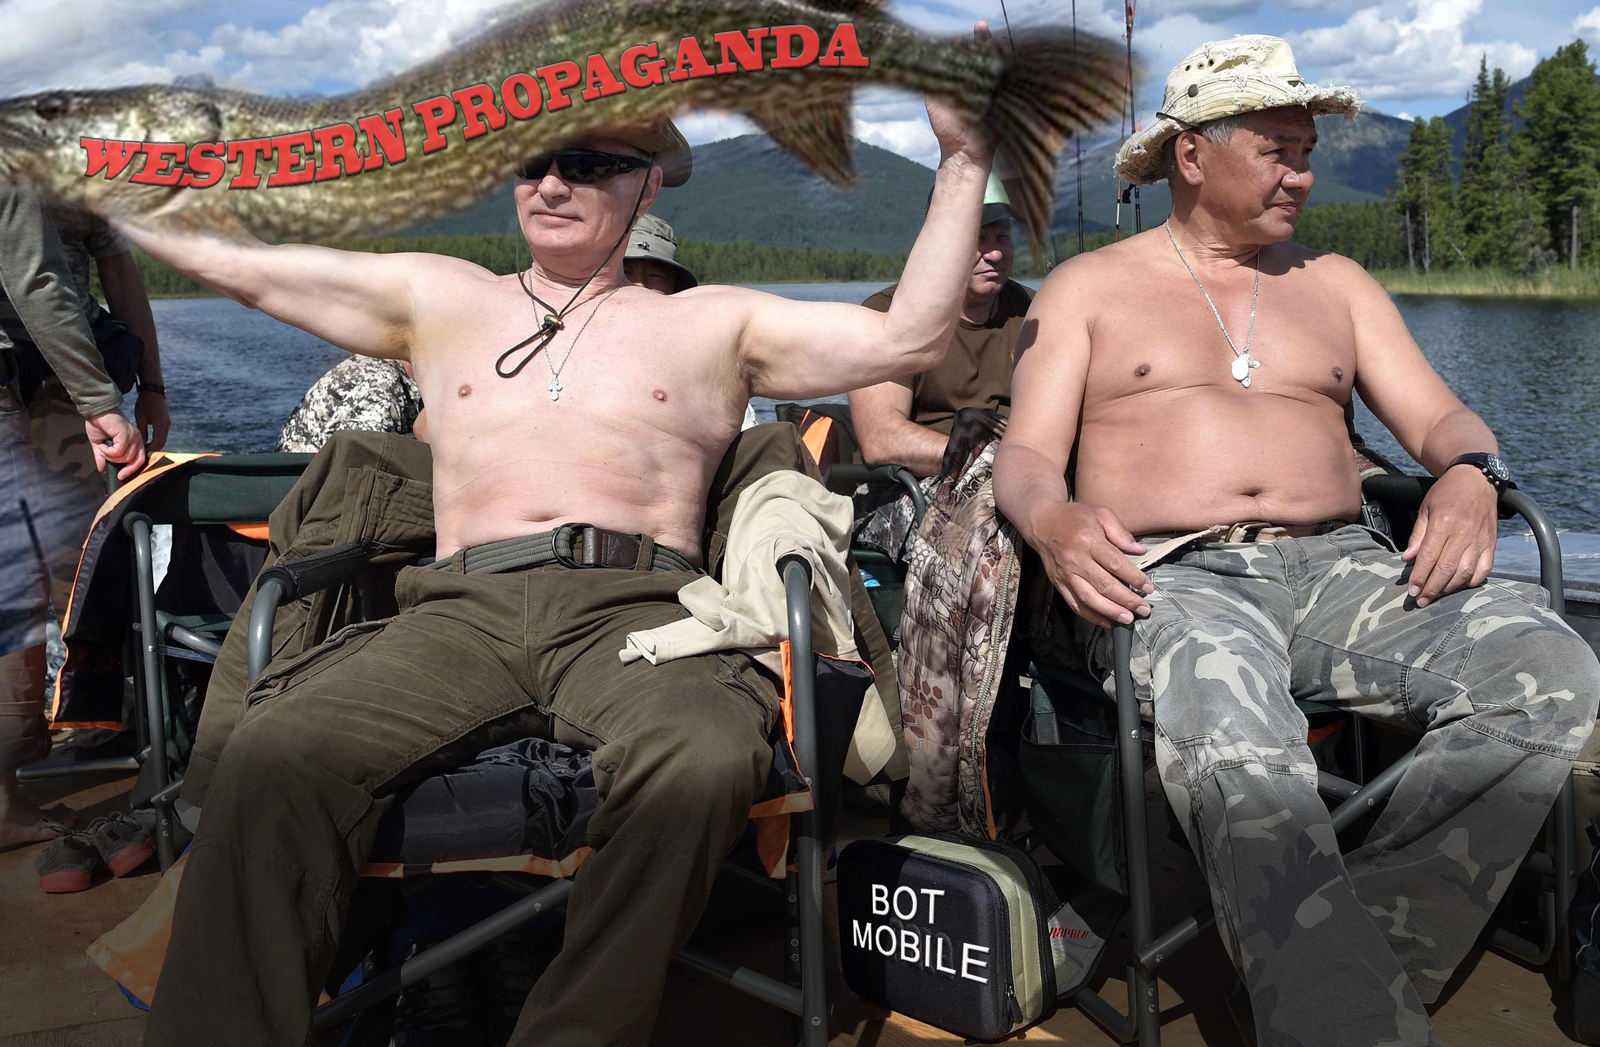 **BREAKING** KREMLIN BOTS TAKE VACATION – WORLD SAVED FOR NANOSECONDS